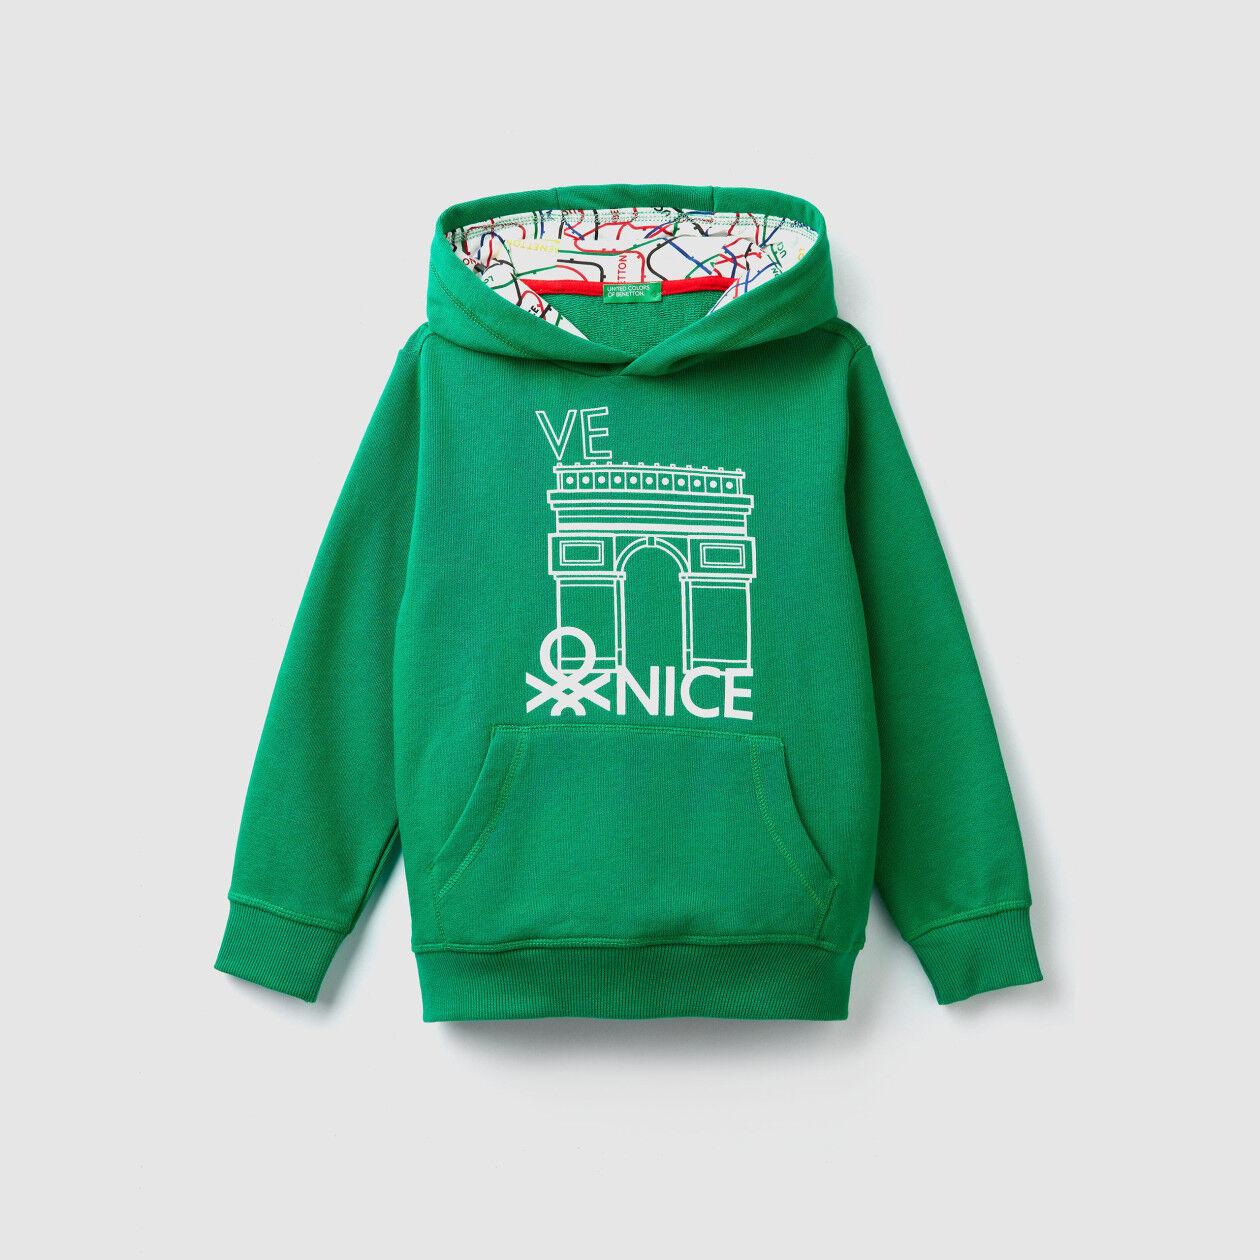 Hoodie with city print